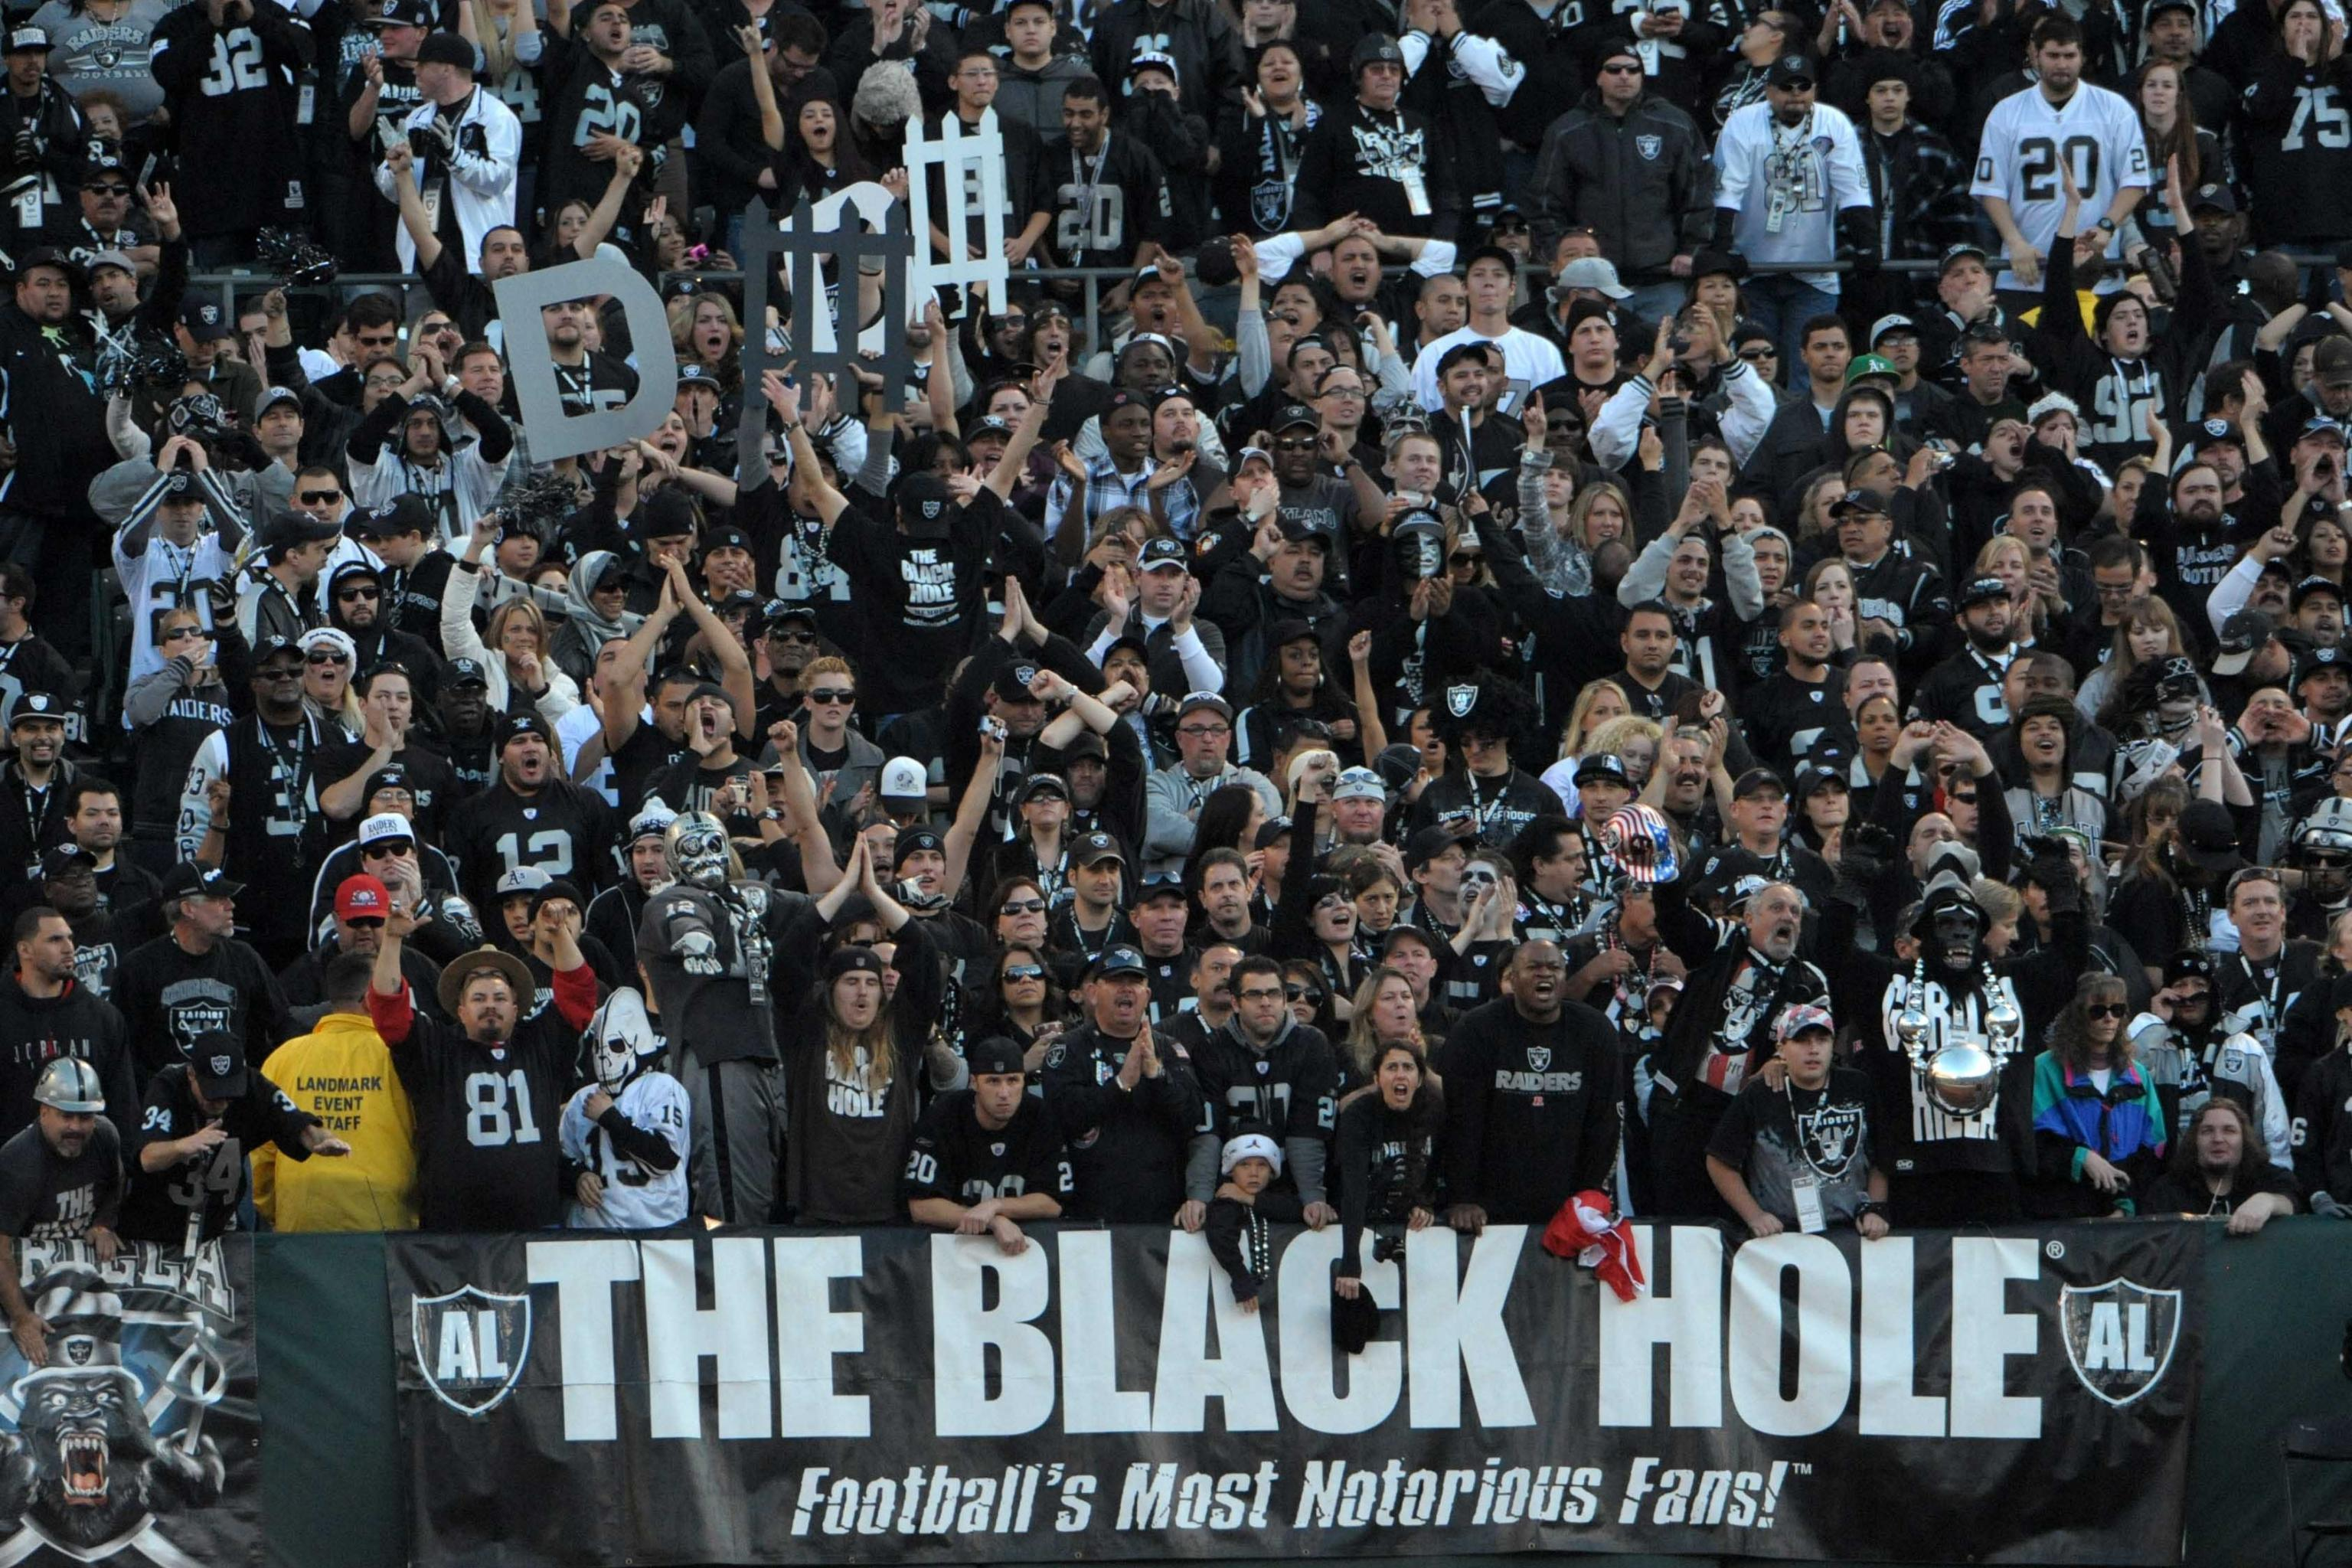 Bevorzugt Oakland Raiders, NFL, Reportedly Hold Secret Meeting to Discuss ED65